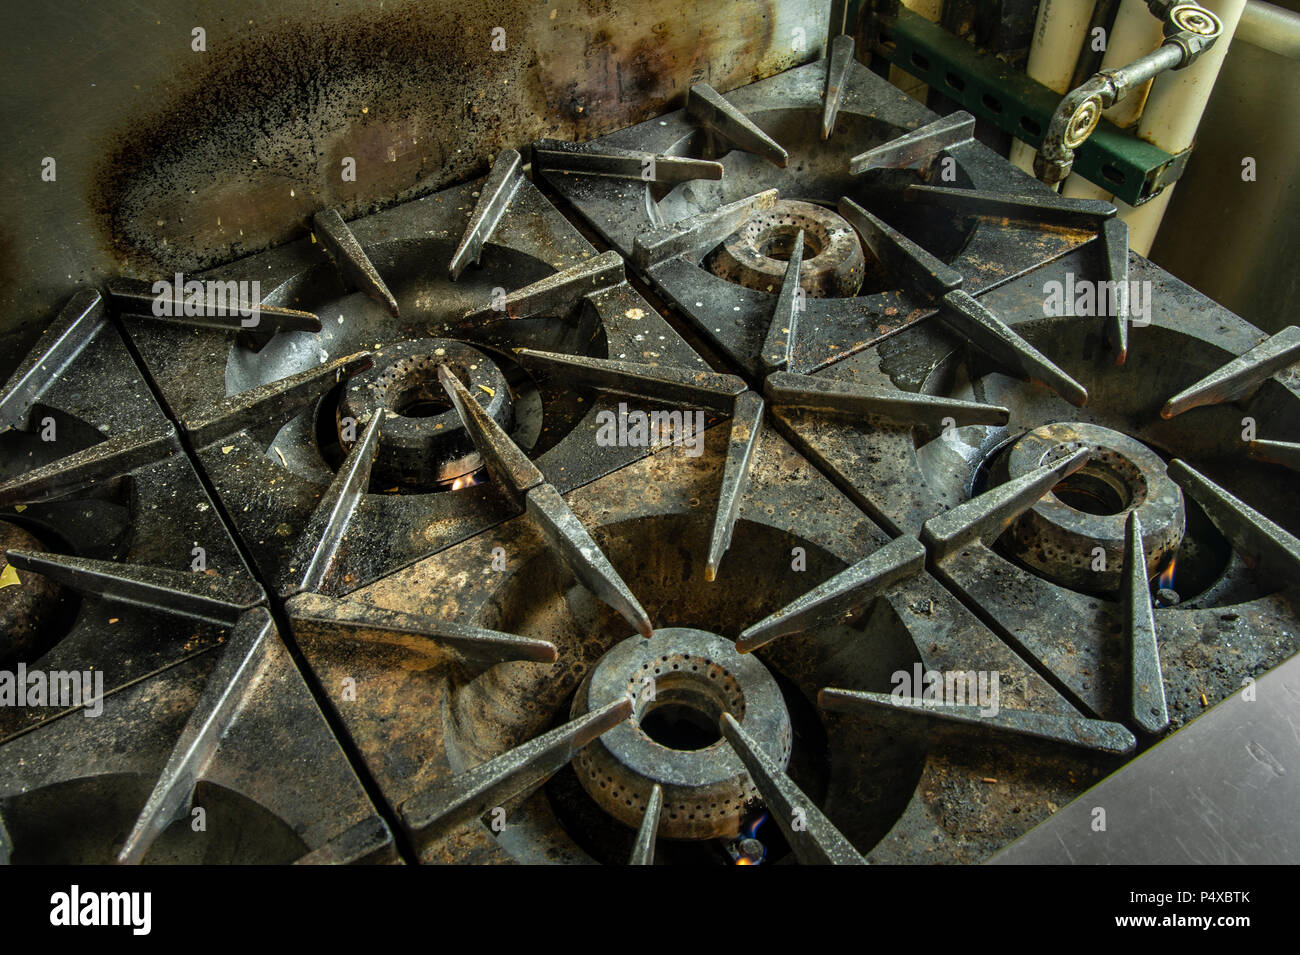 Commercial Stove Detail In Restaurant Kitchen - Stock Image